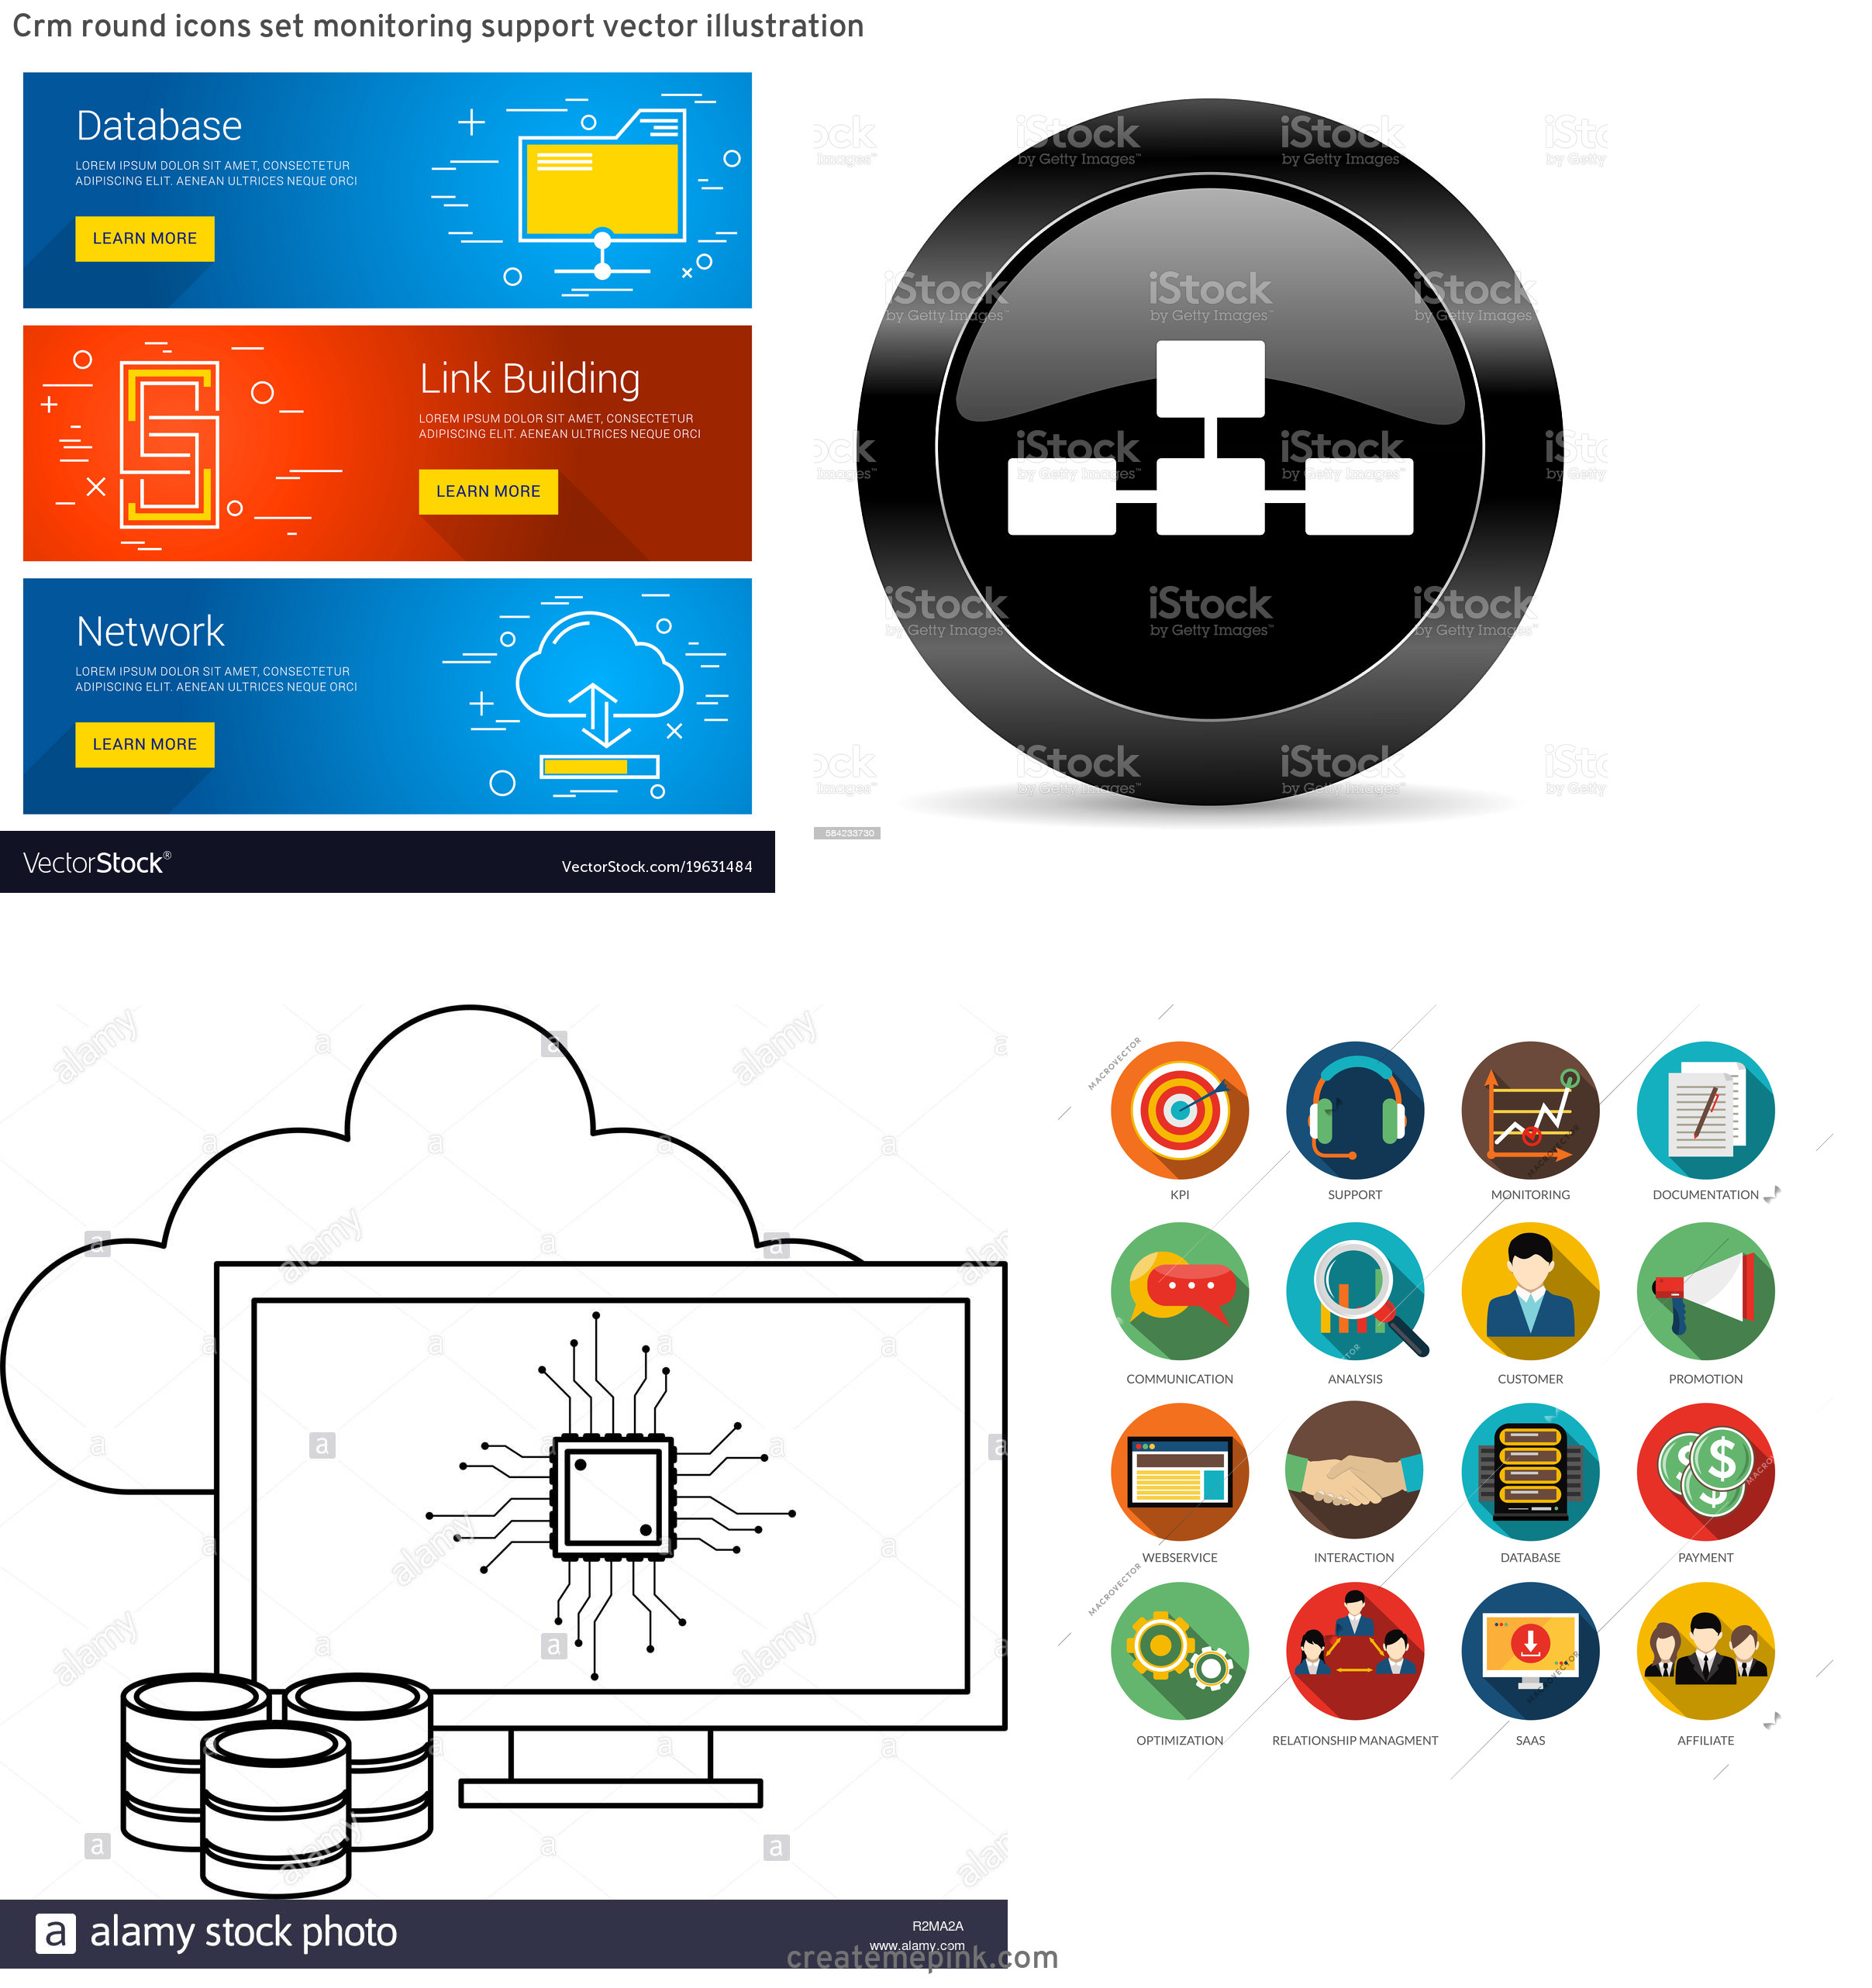 Database Vector Art: Crm Round Icons Set Monitoring Support Vector Illustration